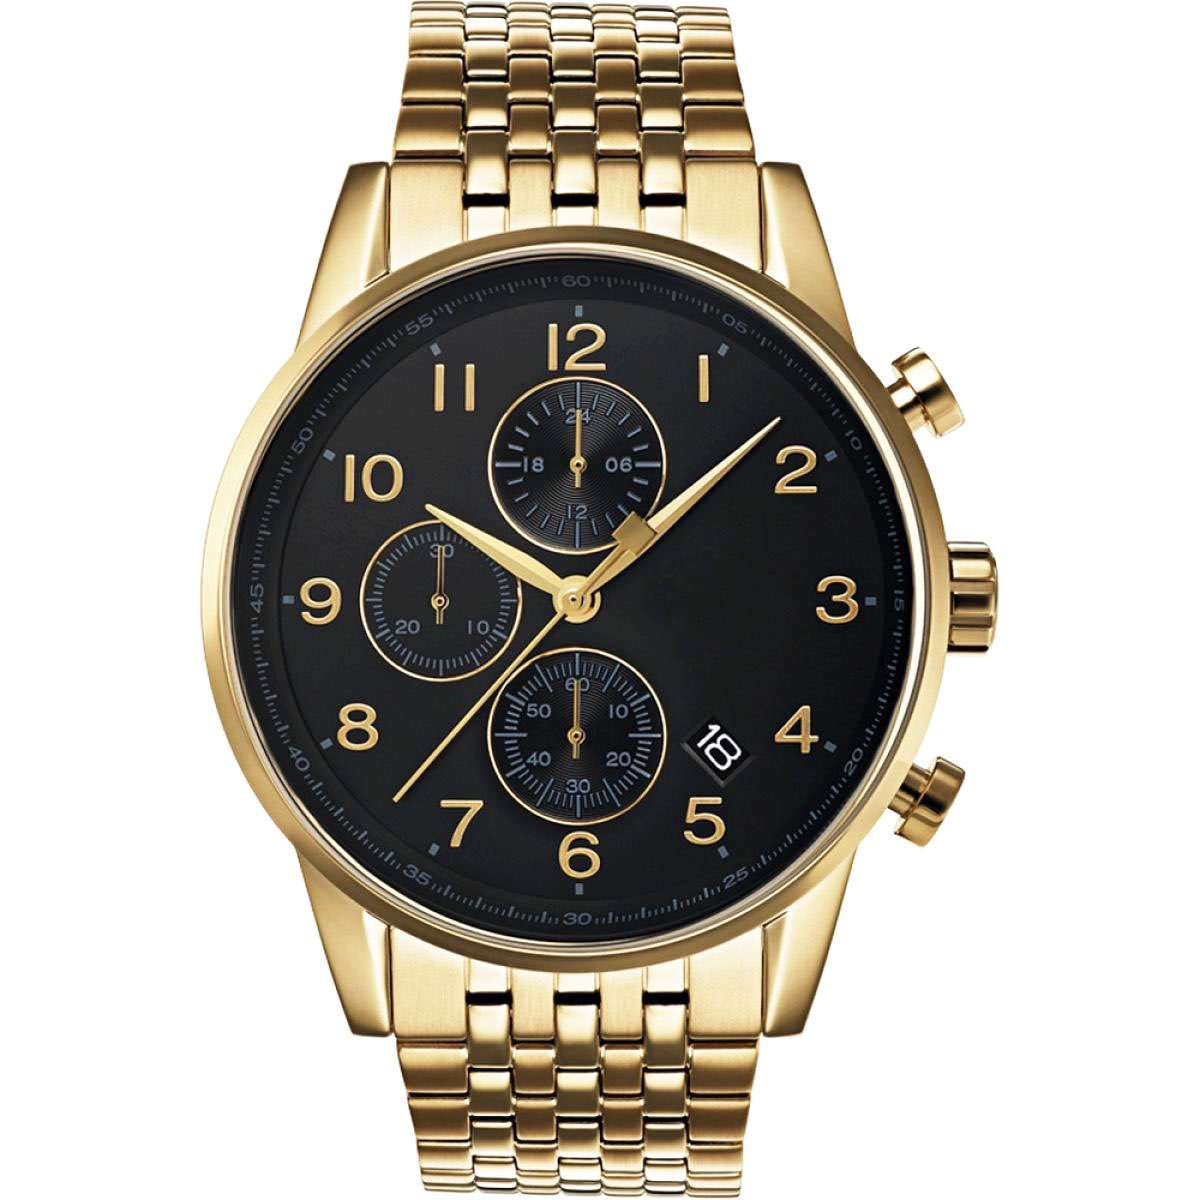 Chronograph Watch Men CM-8024 Customize Watch Top One Watch Manufacturer of Chronograph China